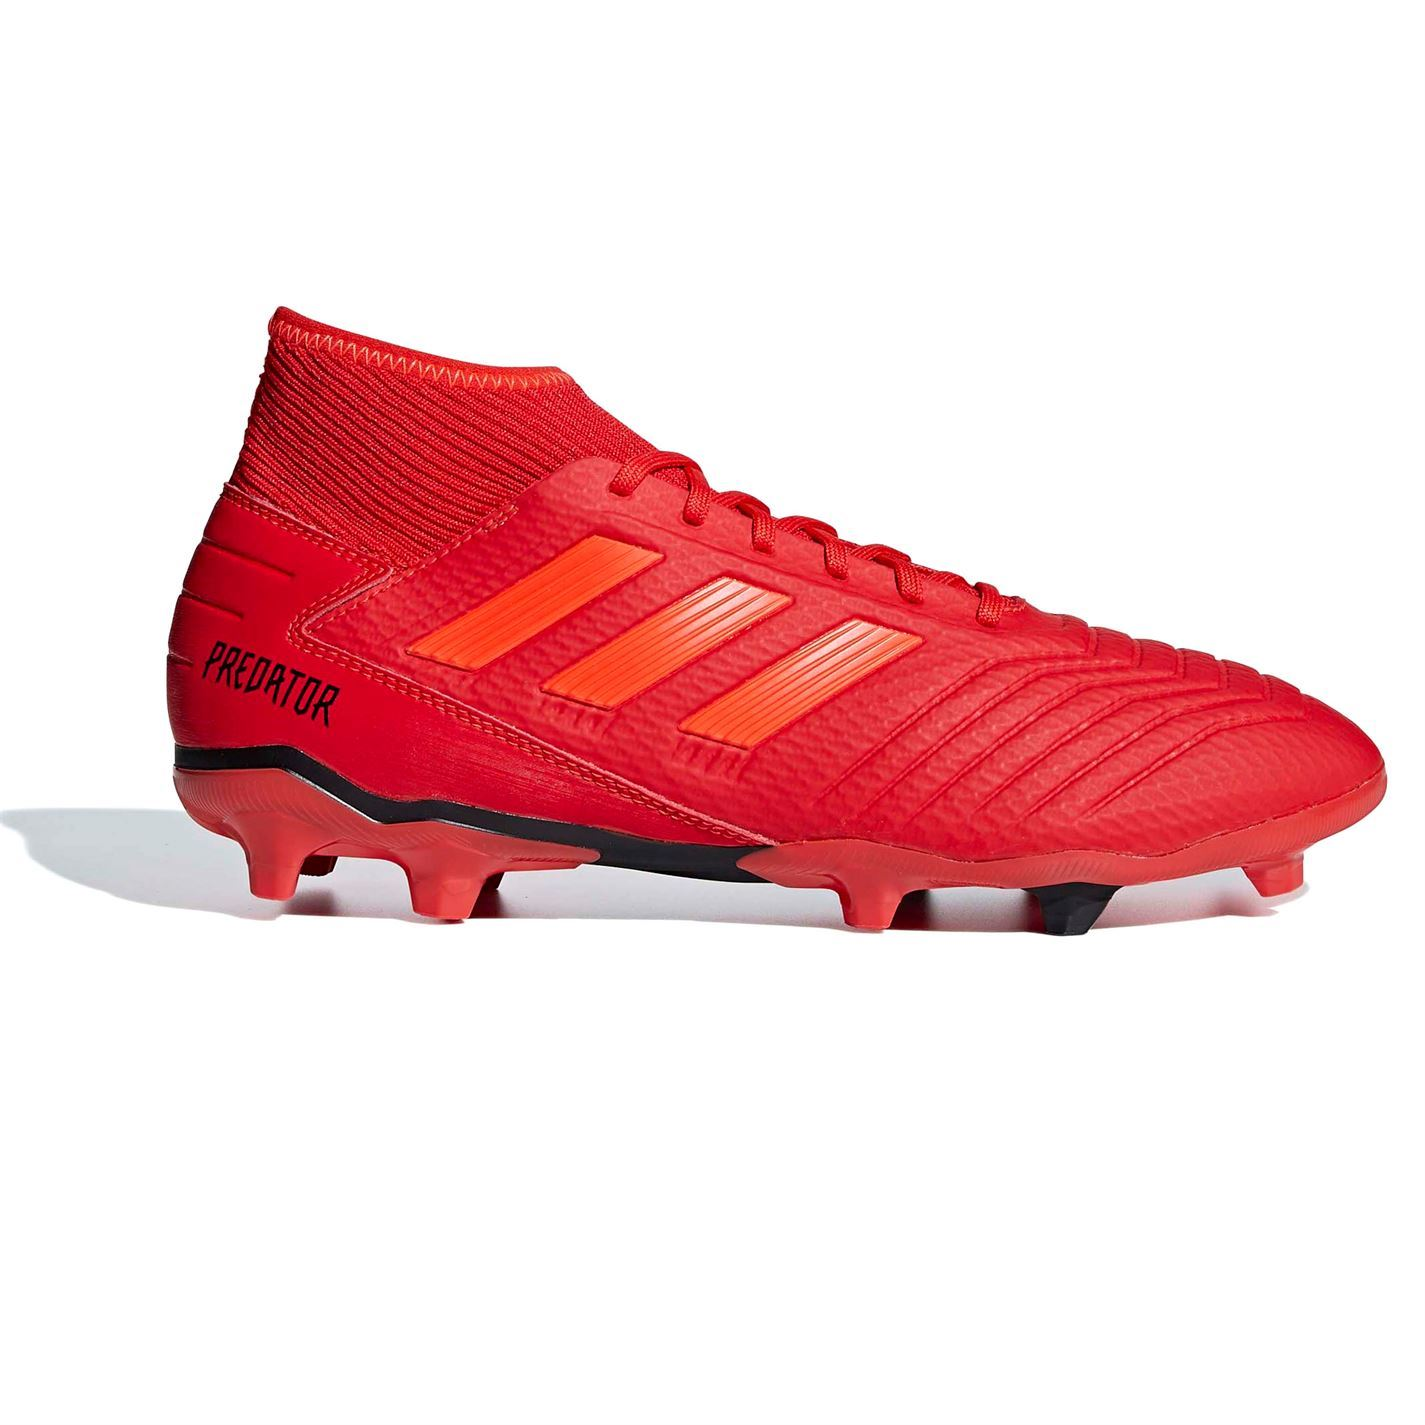 Acquista Adidas Scarpe Da Calcio Predator FG Mens Youth